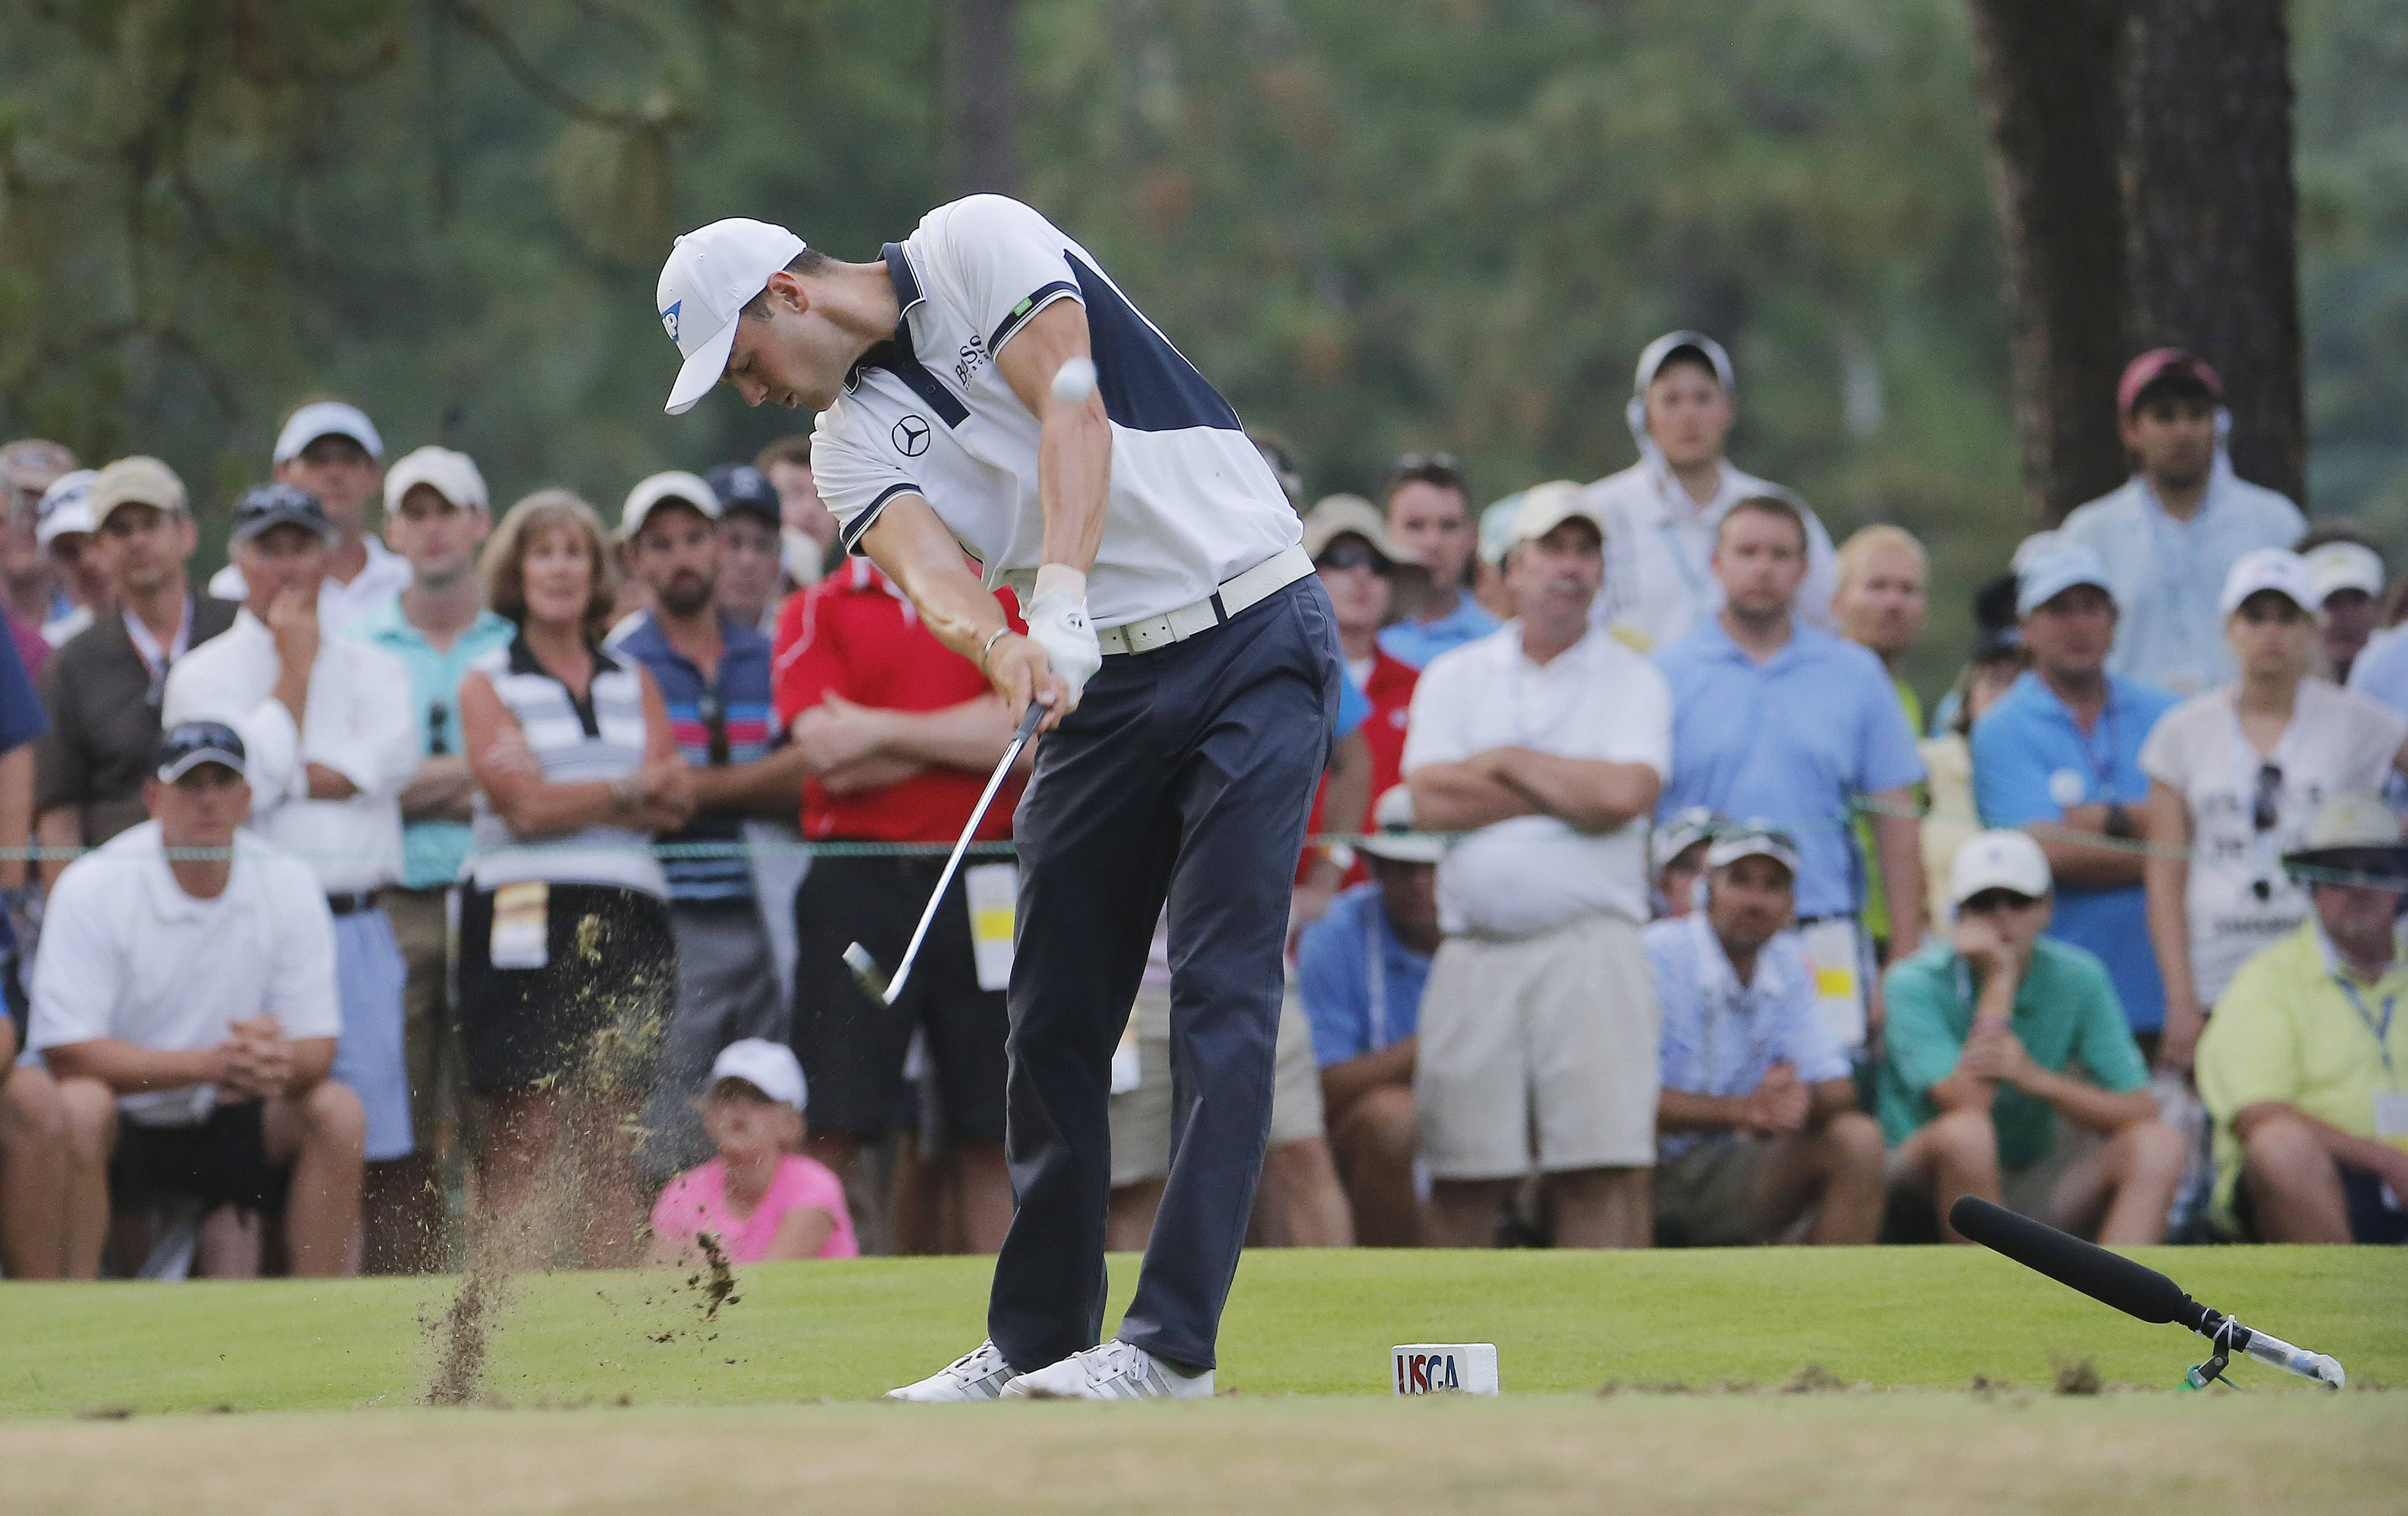 Martin Kaymer, of Germany, hits his tee shot on the 17th hole during the final round of the U.S. Open golf tournament in Pinehurst, N.C., Sunday, June 15, 2014.